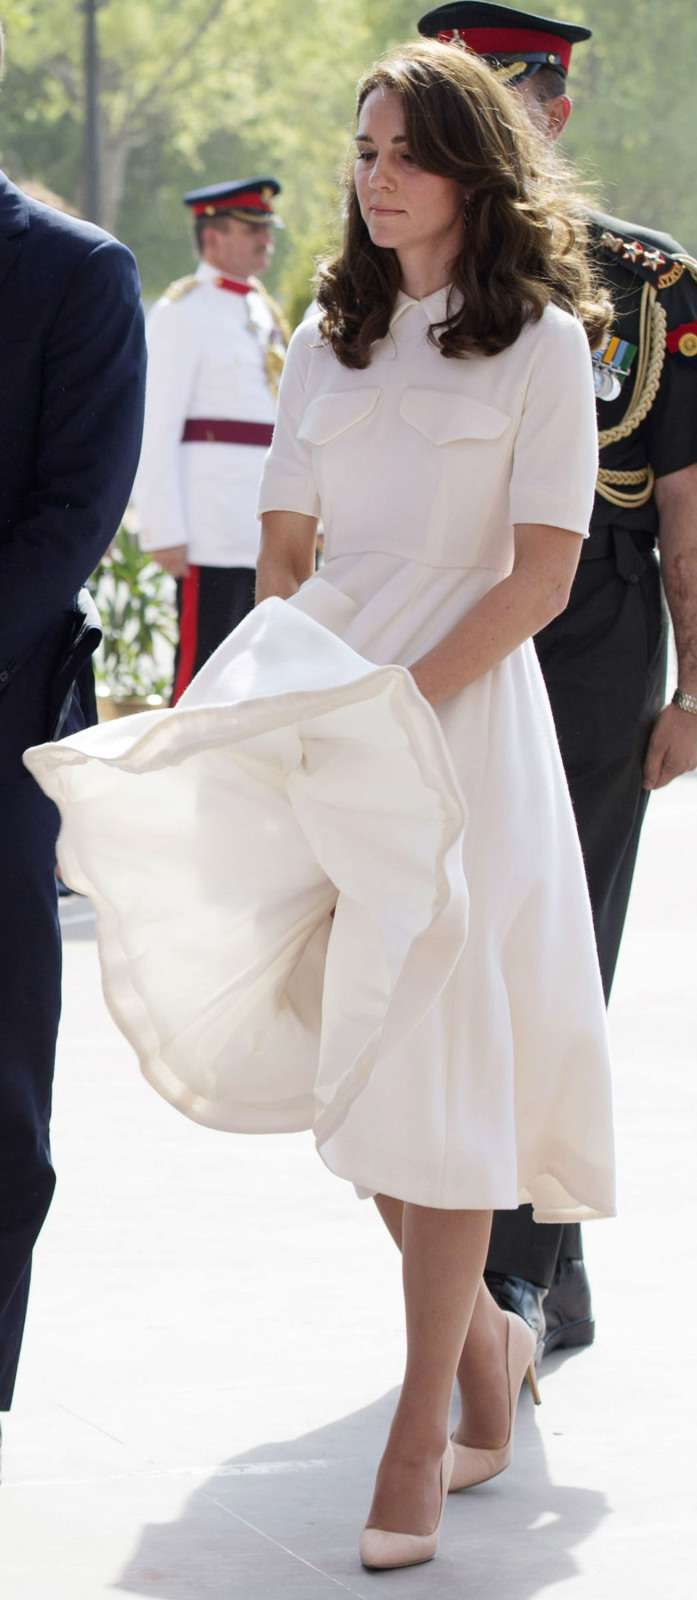 Royals Have Their 'Oops' Moments, Too! But Duchess Kate Knows How To Handle Them Like A True LadyRoyals Have Their 'Oops' Moments, Too! But Duchess Kate Knows How To Handle Them Like A True Lady